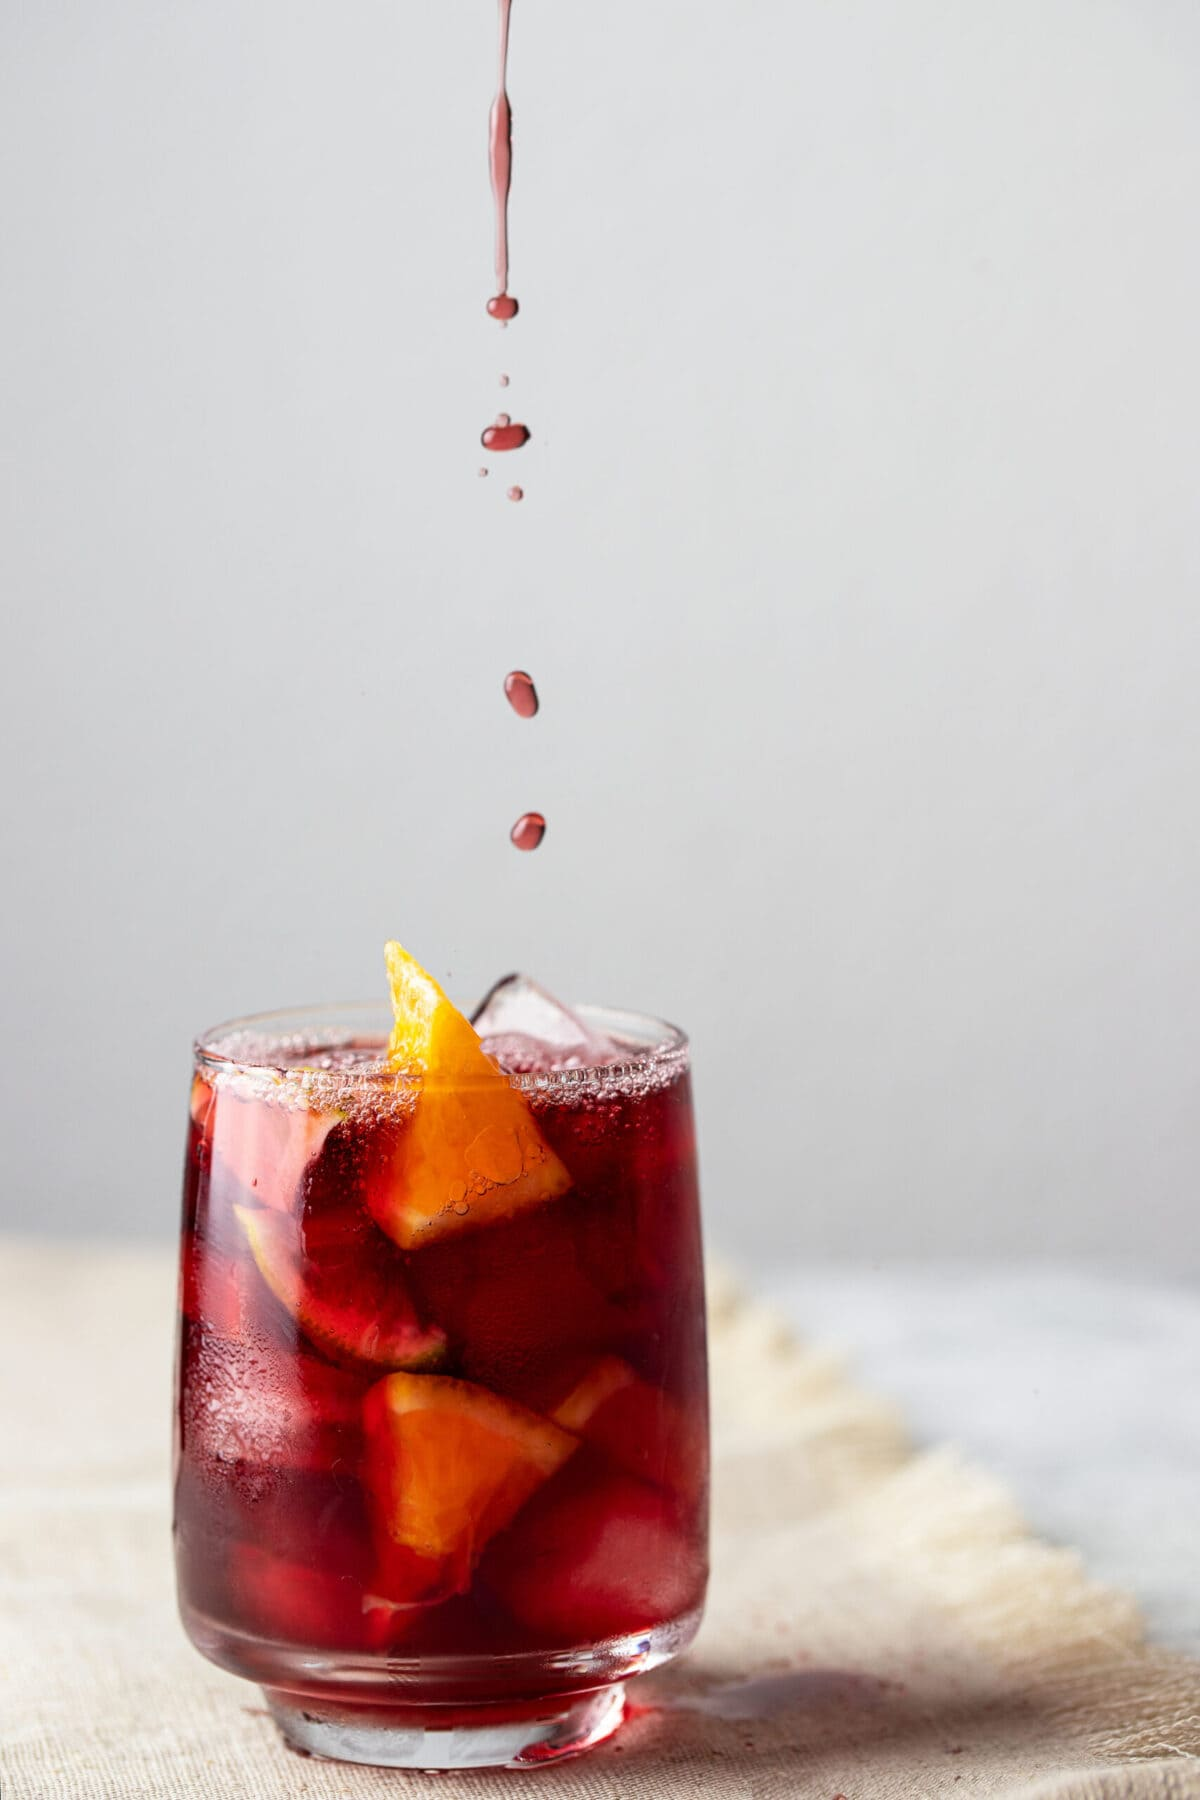 Refreshing glass of kombucha Sangria on cement background.